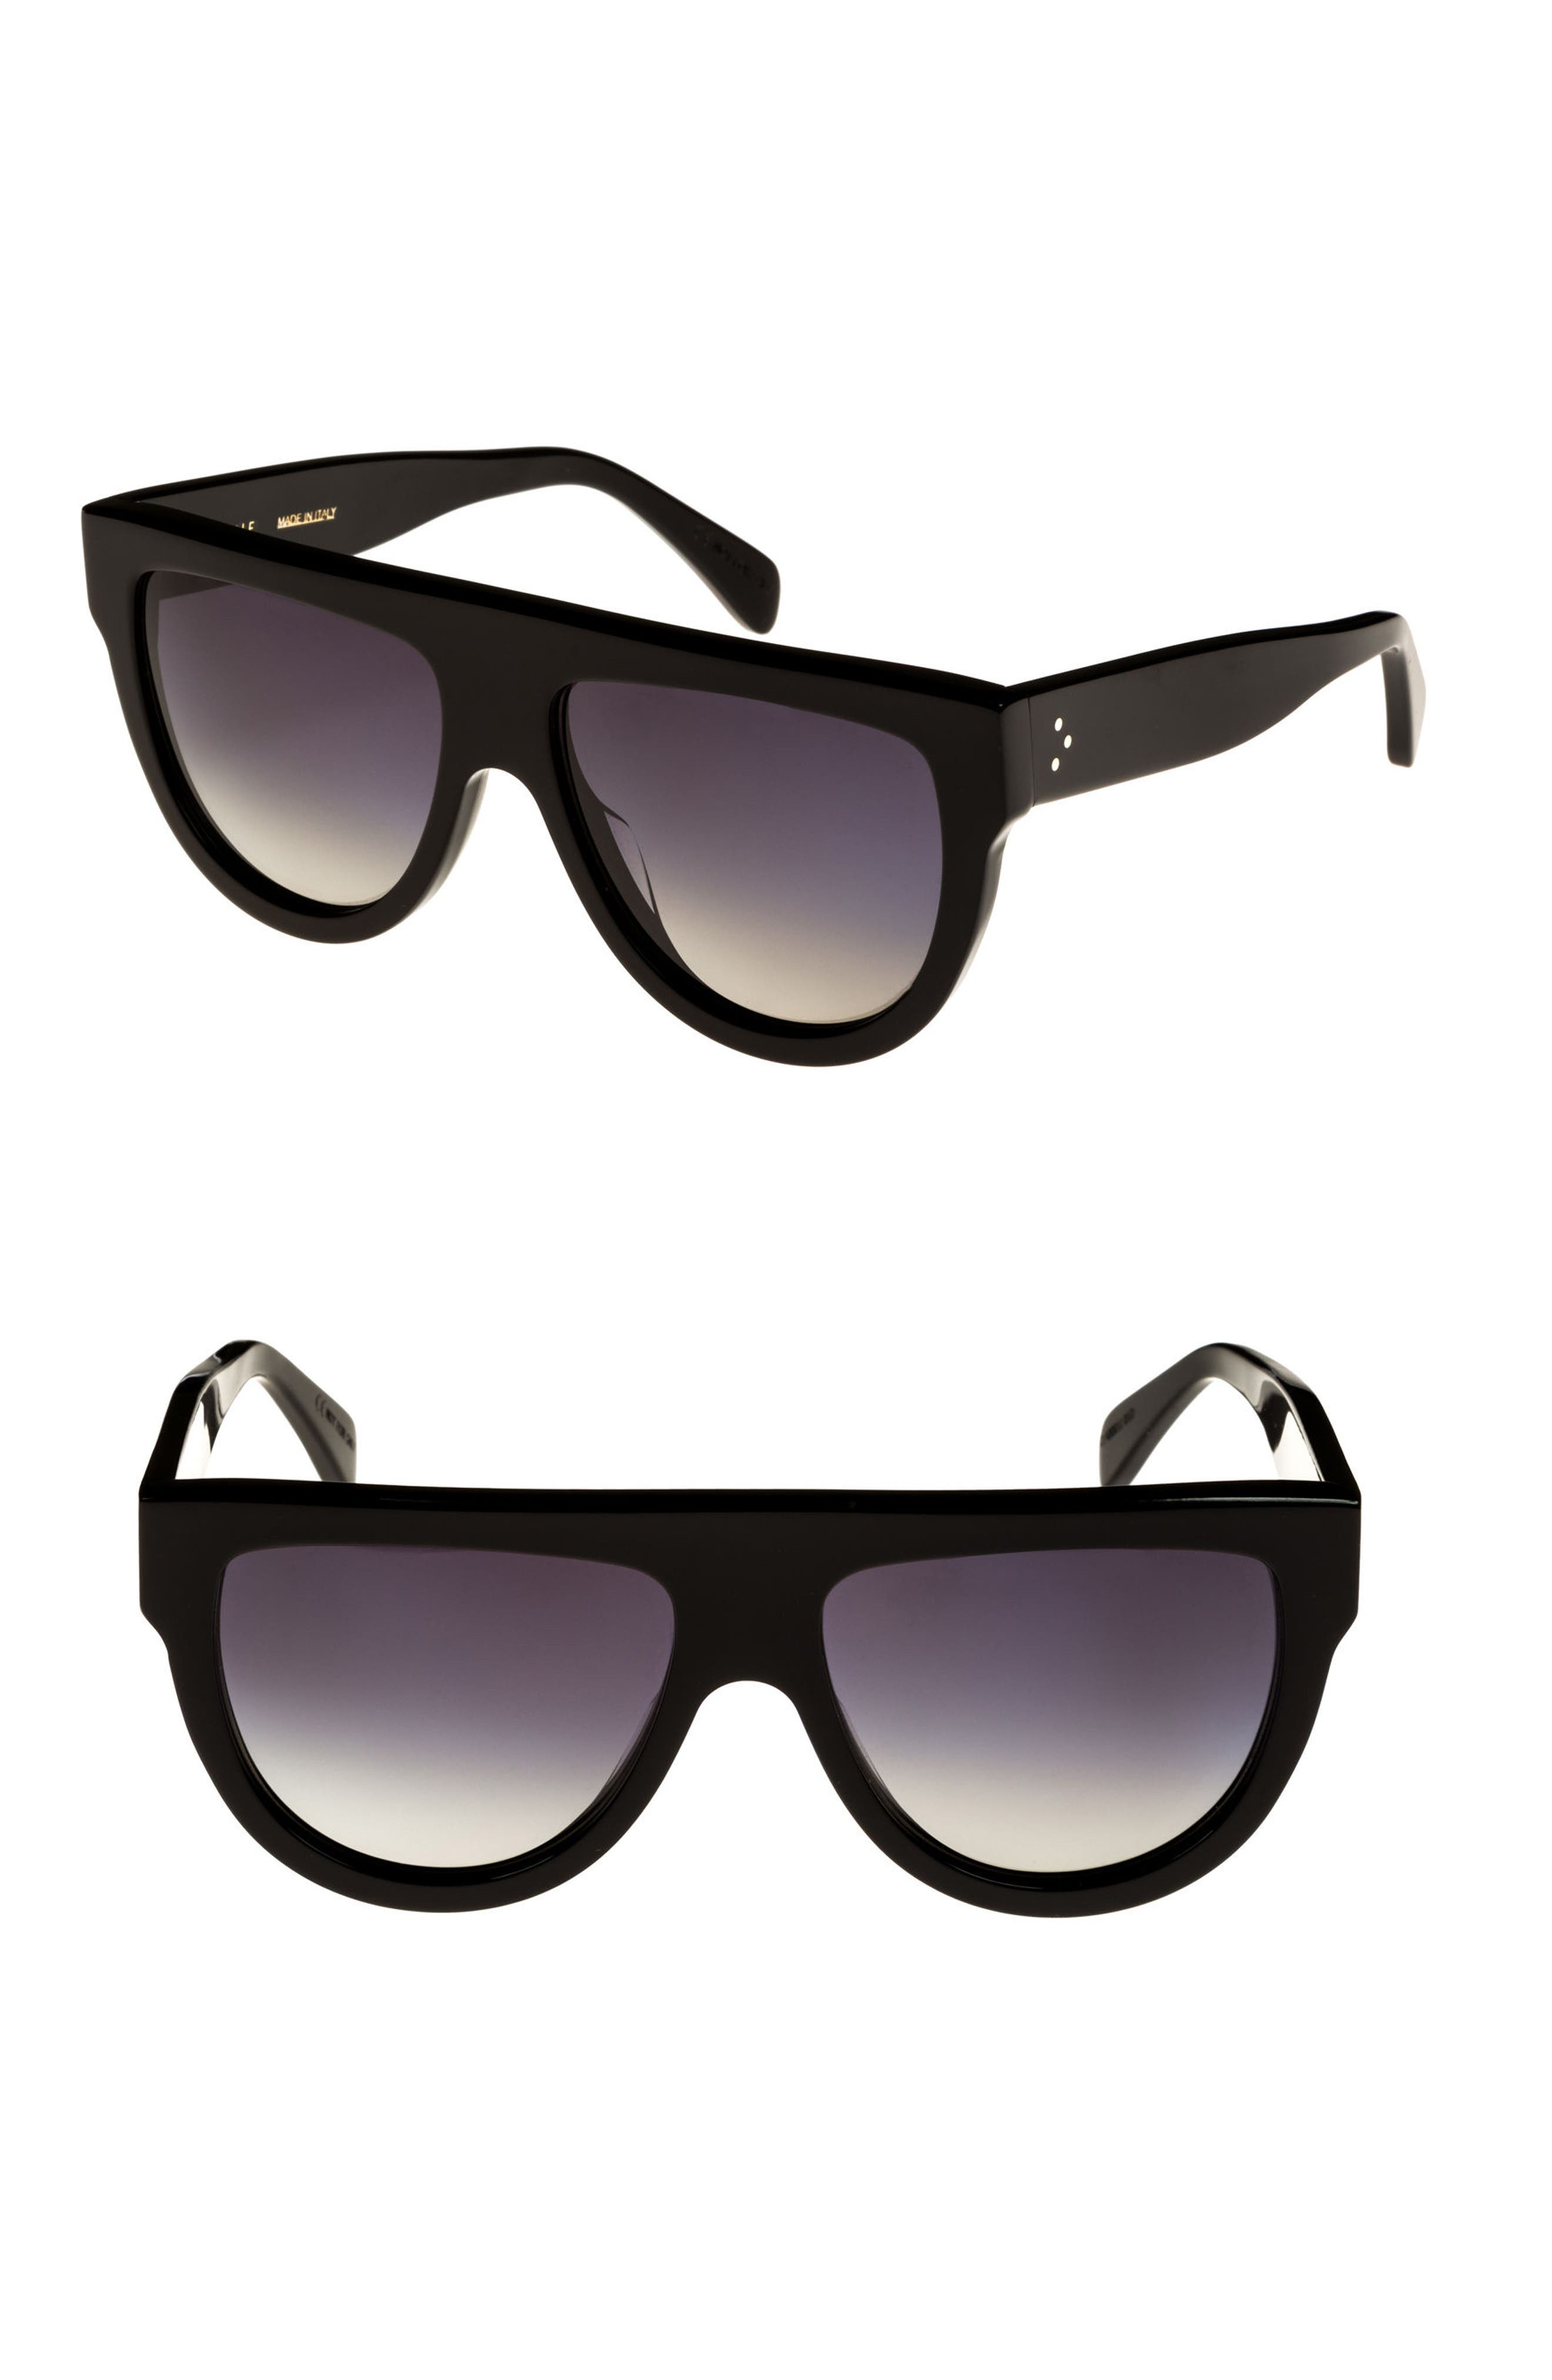 Special Fit 60mm Polarized Gradient Flat Top Sunglasses,                         Main,                         color, Black/ Gradient Smoke